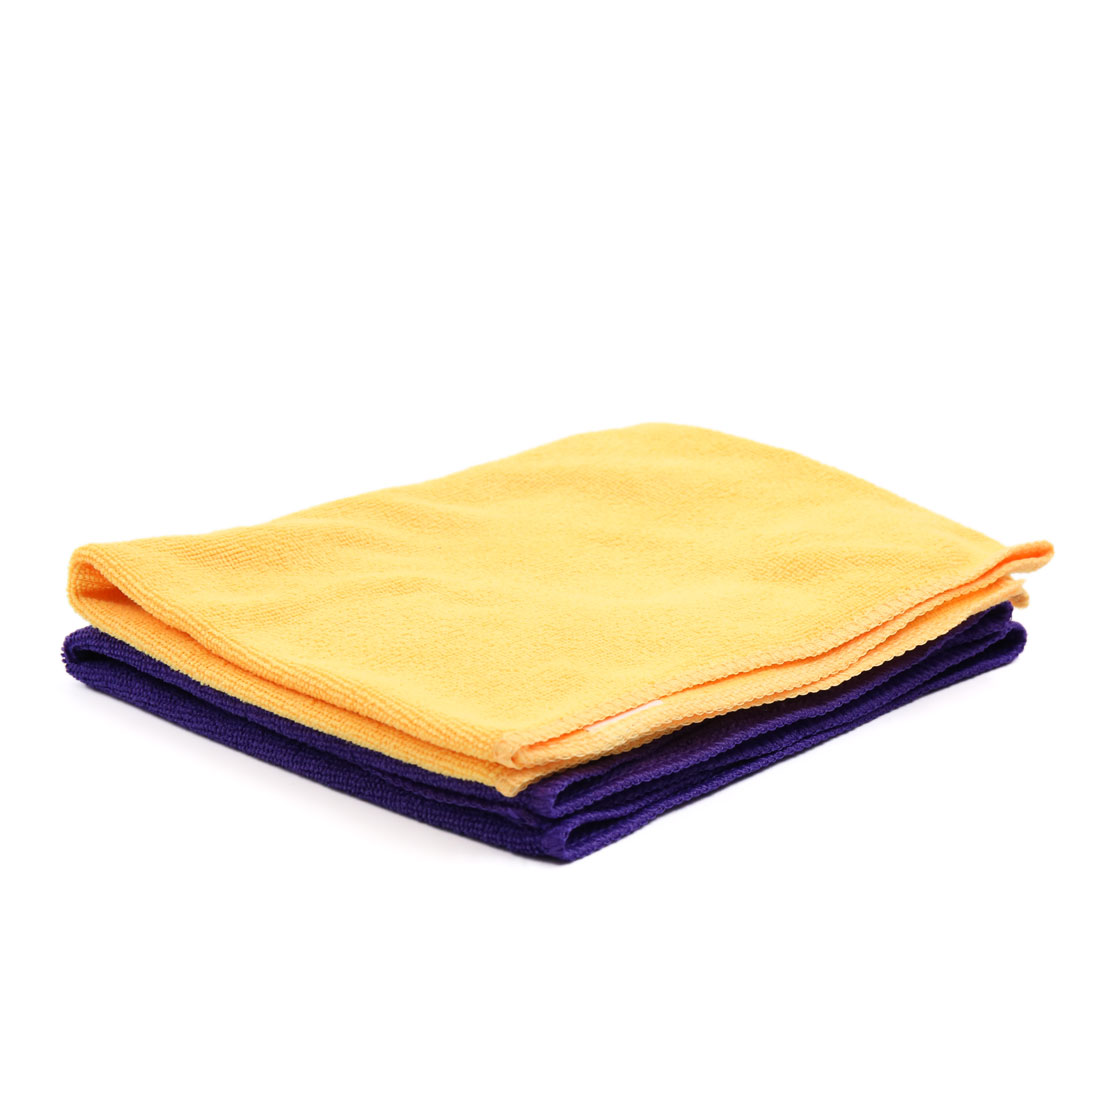 2 Pcs High Absorbing Synthetic Chamois Car Clean Cloth Towel No-scratched for Auto Vehicle Yellow Purple